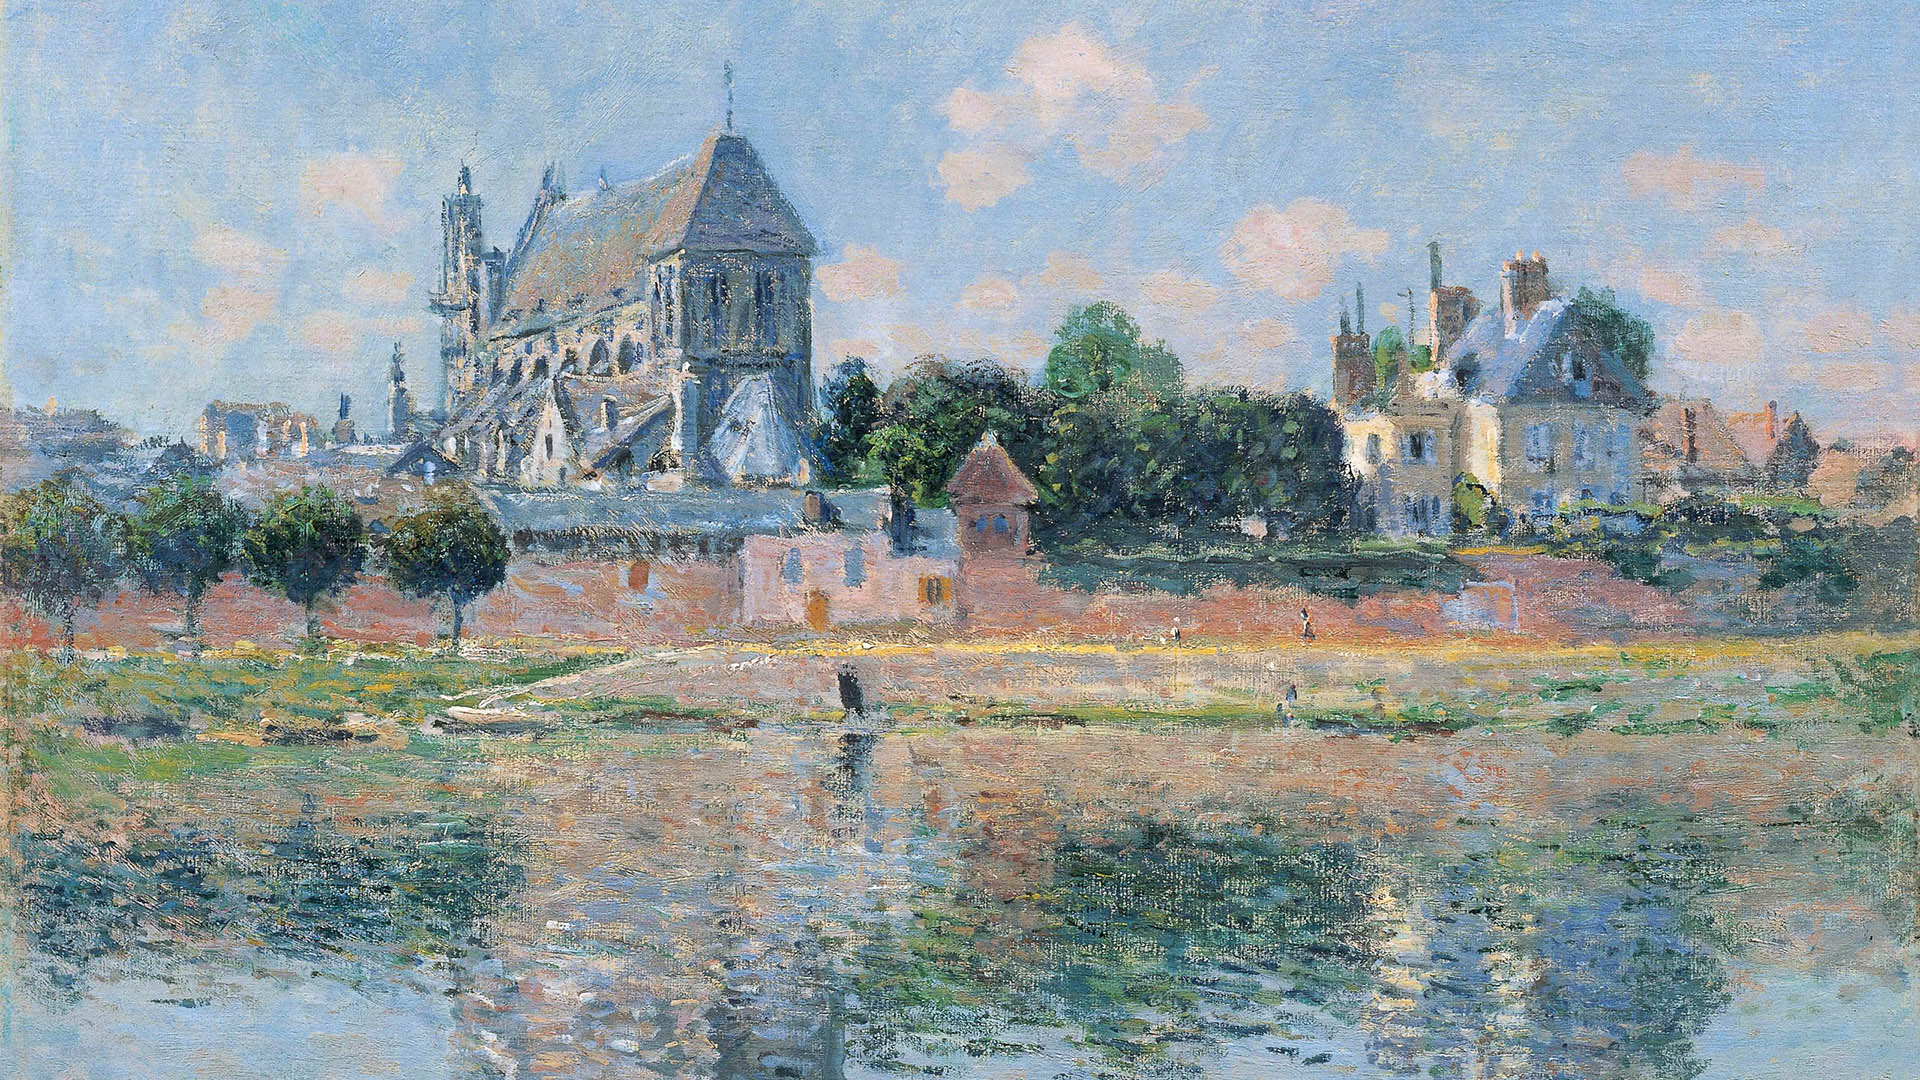 Claude Monet - View of the Church at Vernon 1920x1080